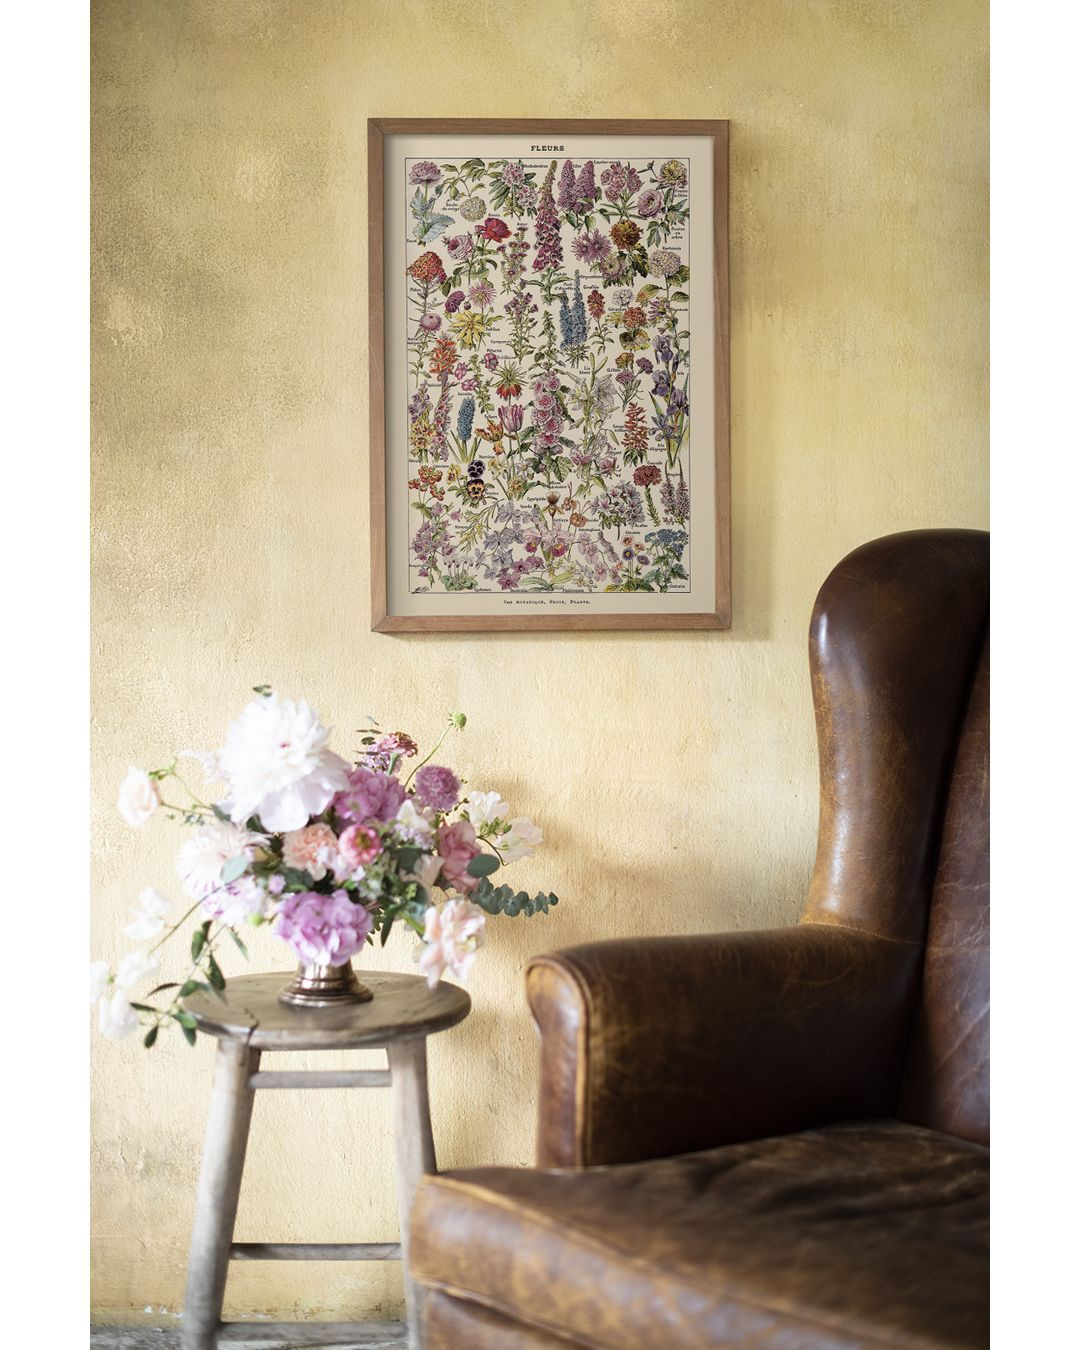 How About A Xl Vintage Poster Of Flowers To Update Your Home Decor This Spring Vintageposter In 2020 Botanical Prints Decor Vintage Art Prints Vintage Flowers